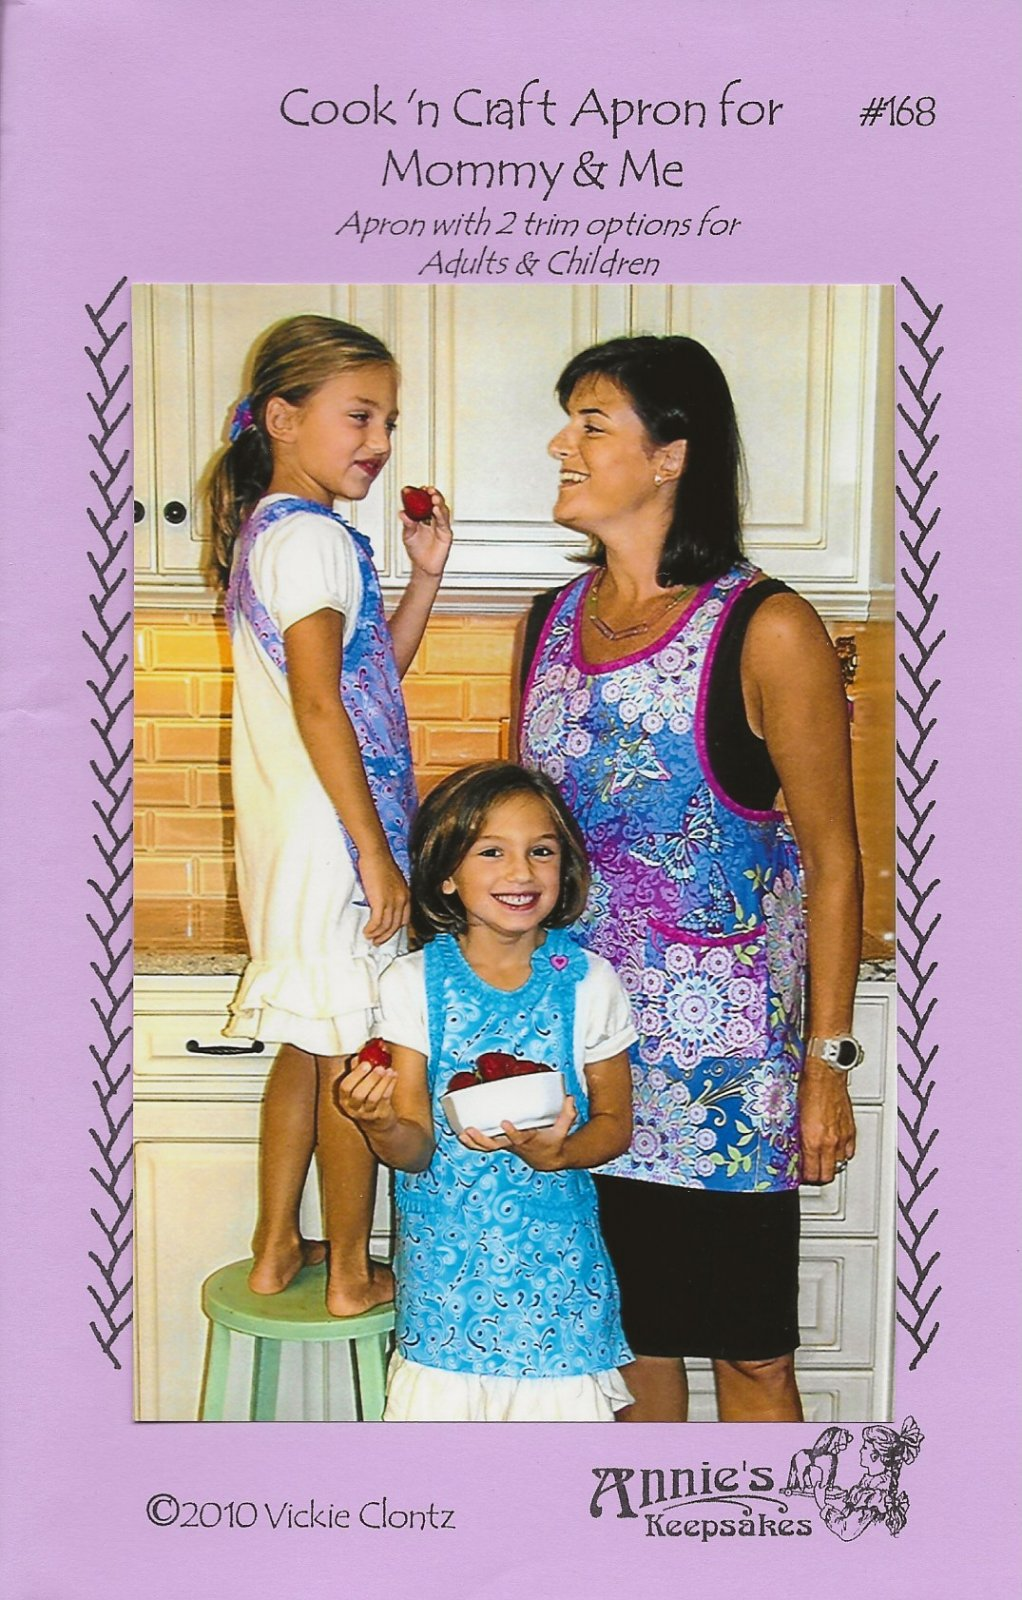 Cook 'n Craft Apron for Mommy & Me